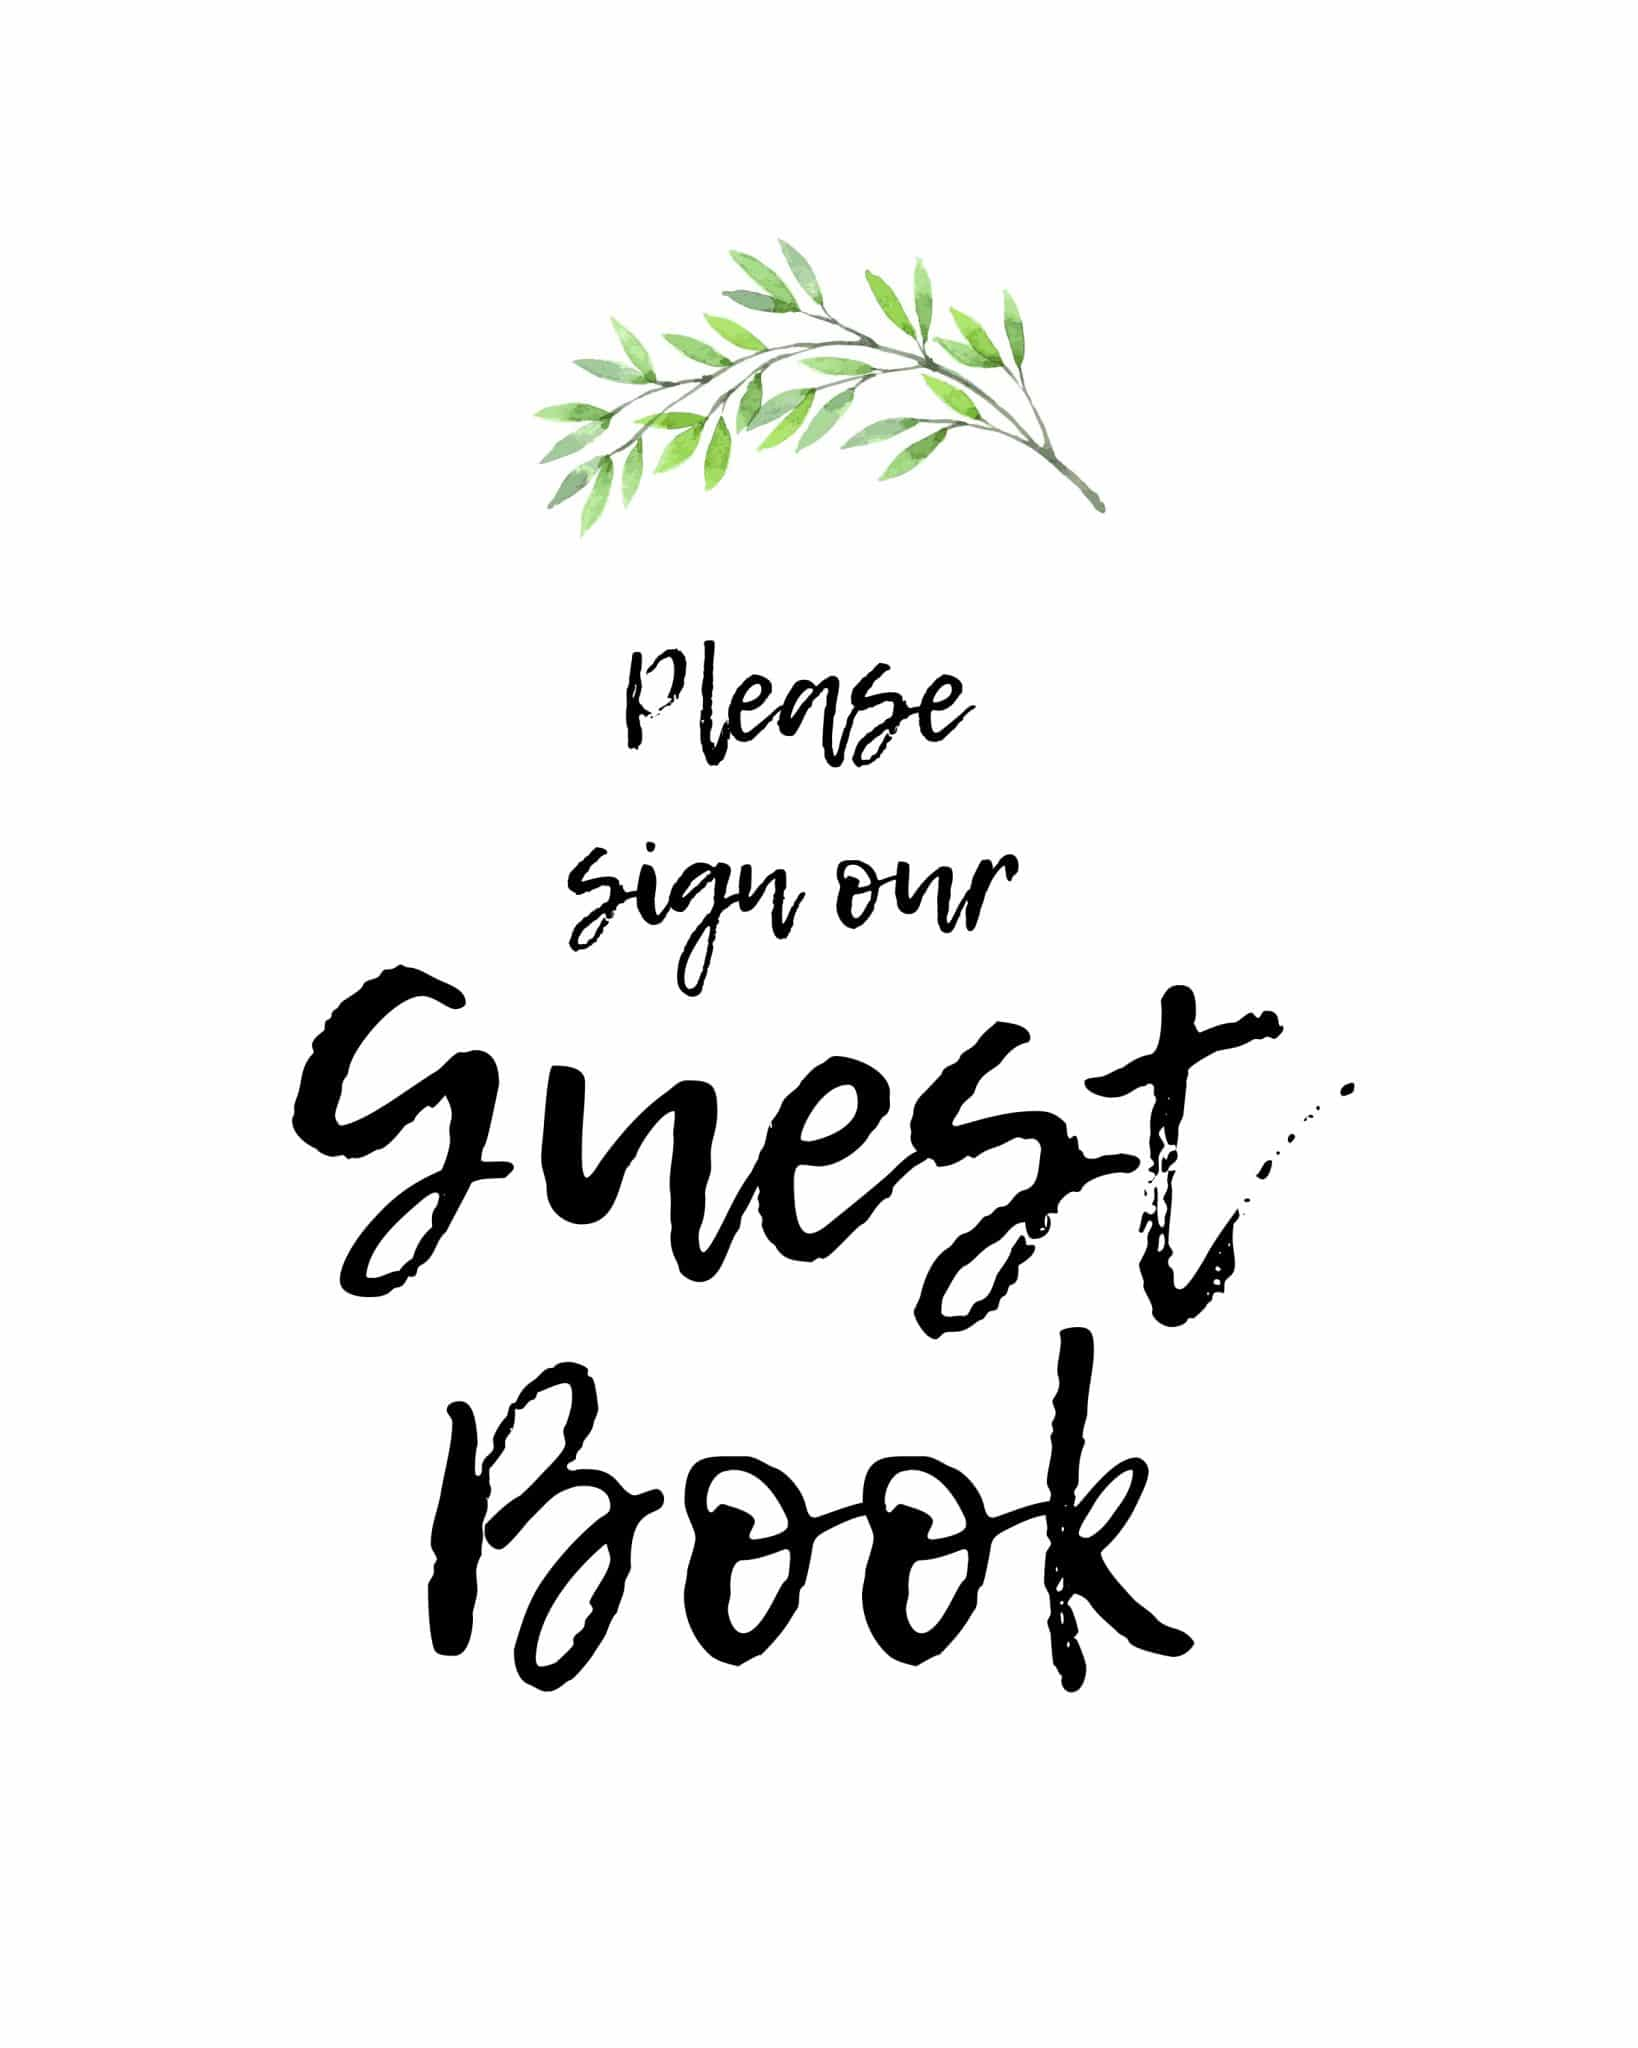 Please sign our guestbook rustic theme